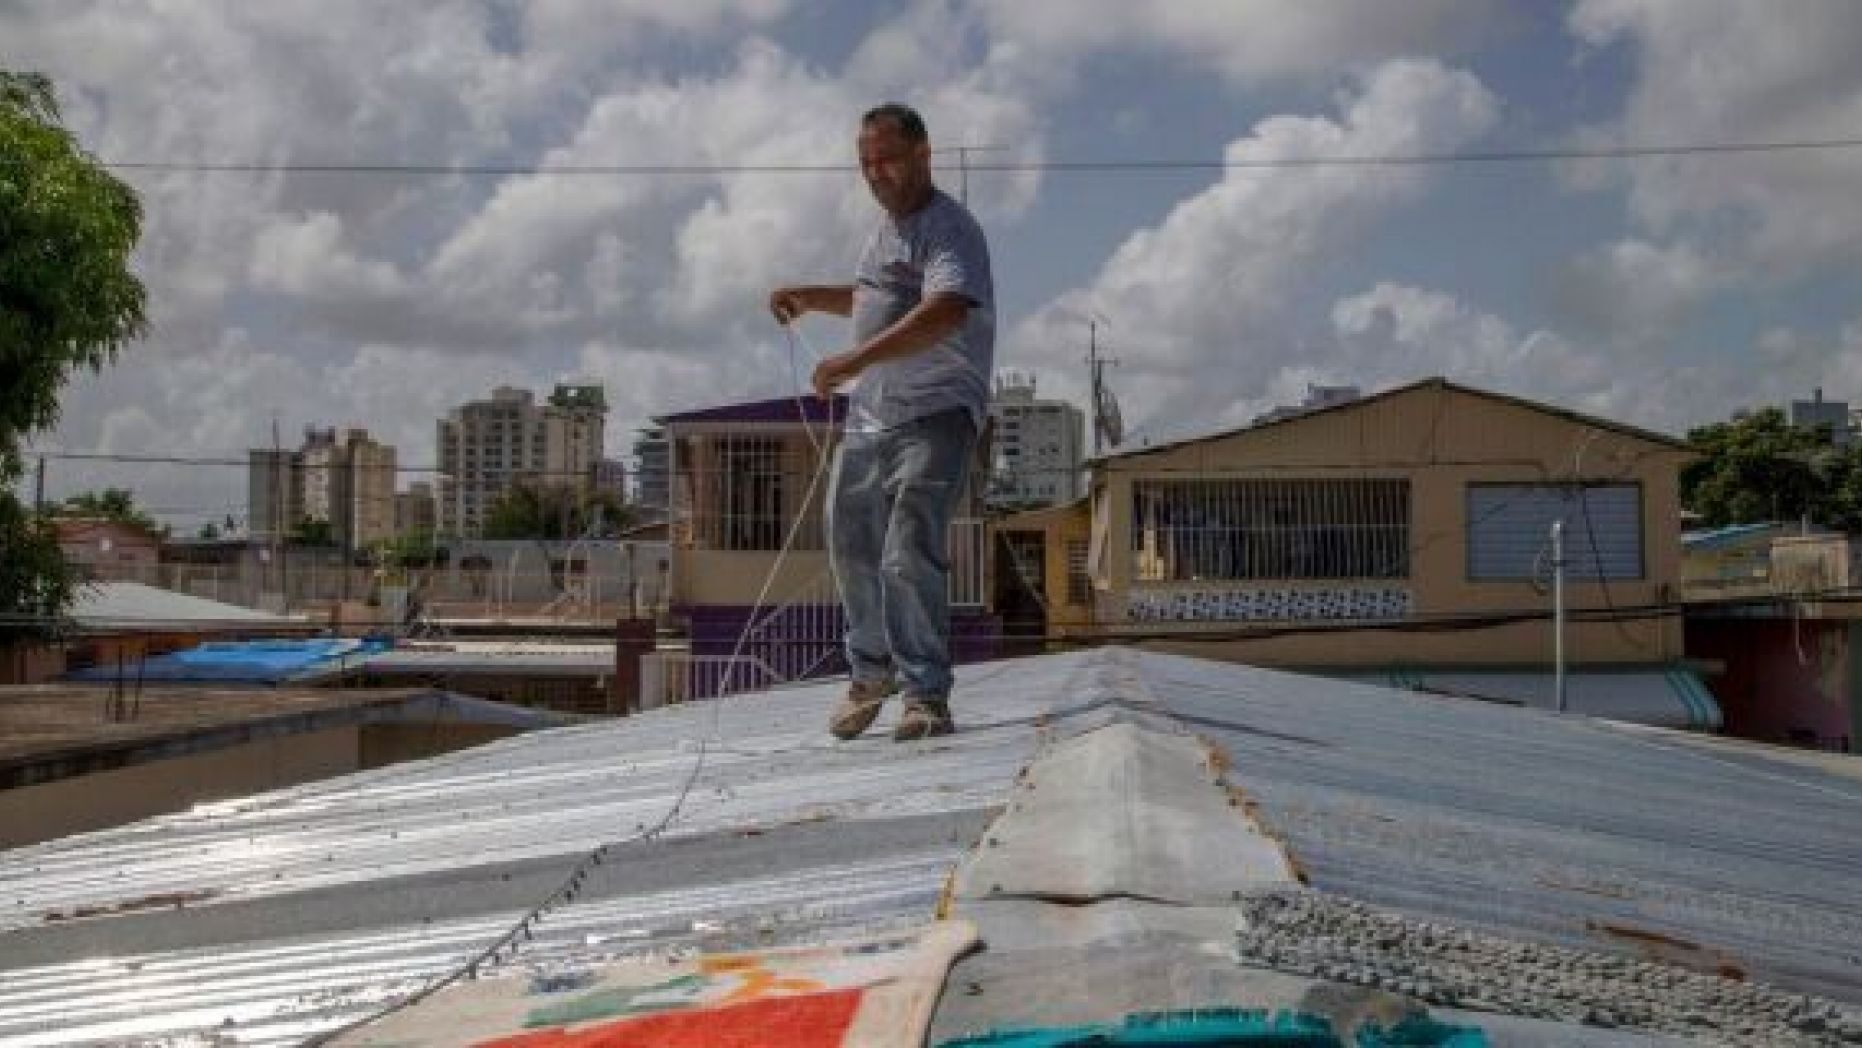 Jorge Ortiz works to tie down his roof as he prepares for the arrival of Tropical Storm Dorian, in the Martín Peña neighborhood of San Juan, Puerto Rico. (AP Photo/Gianfranco Gaglione)